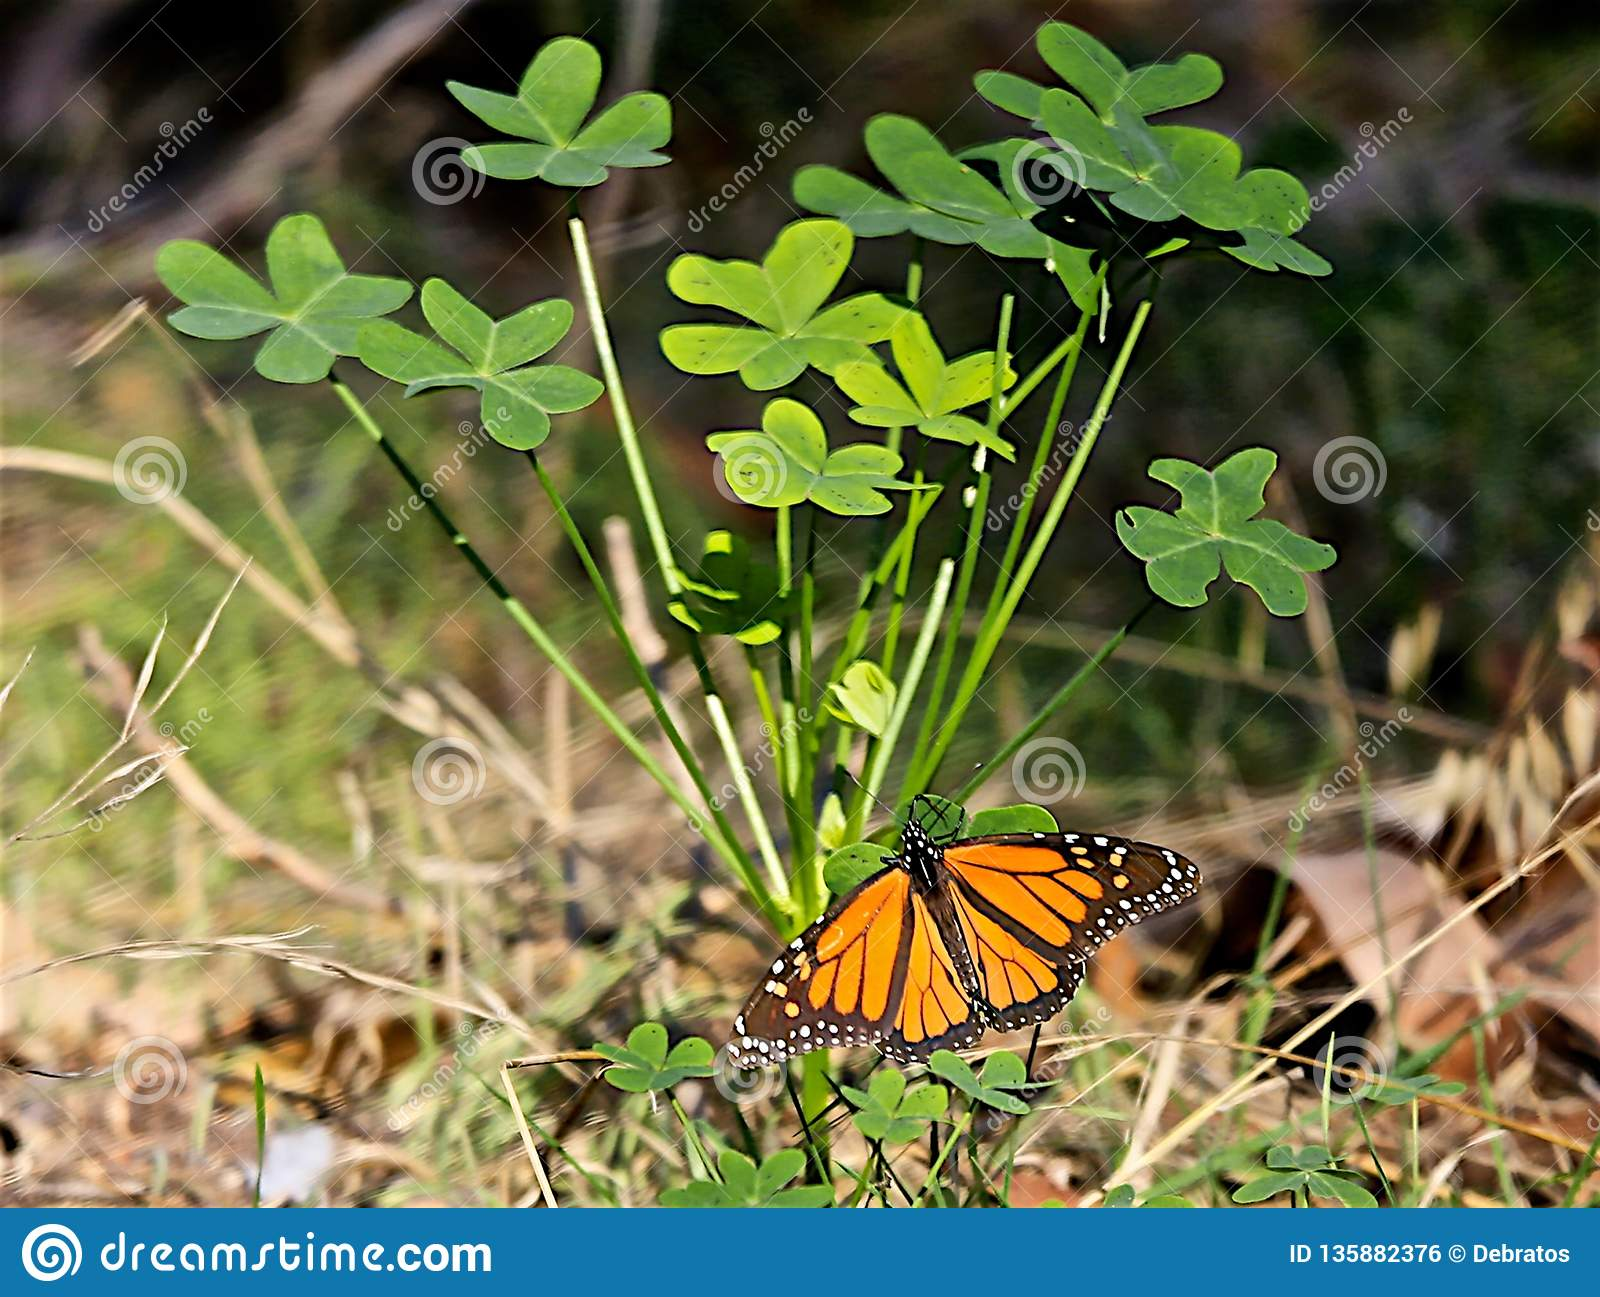 Monarch butterfly leaves